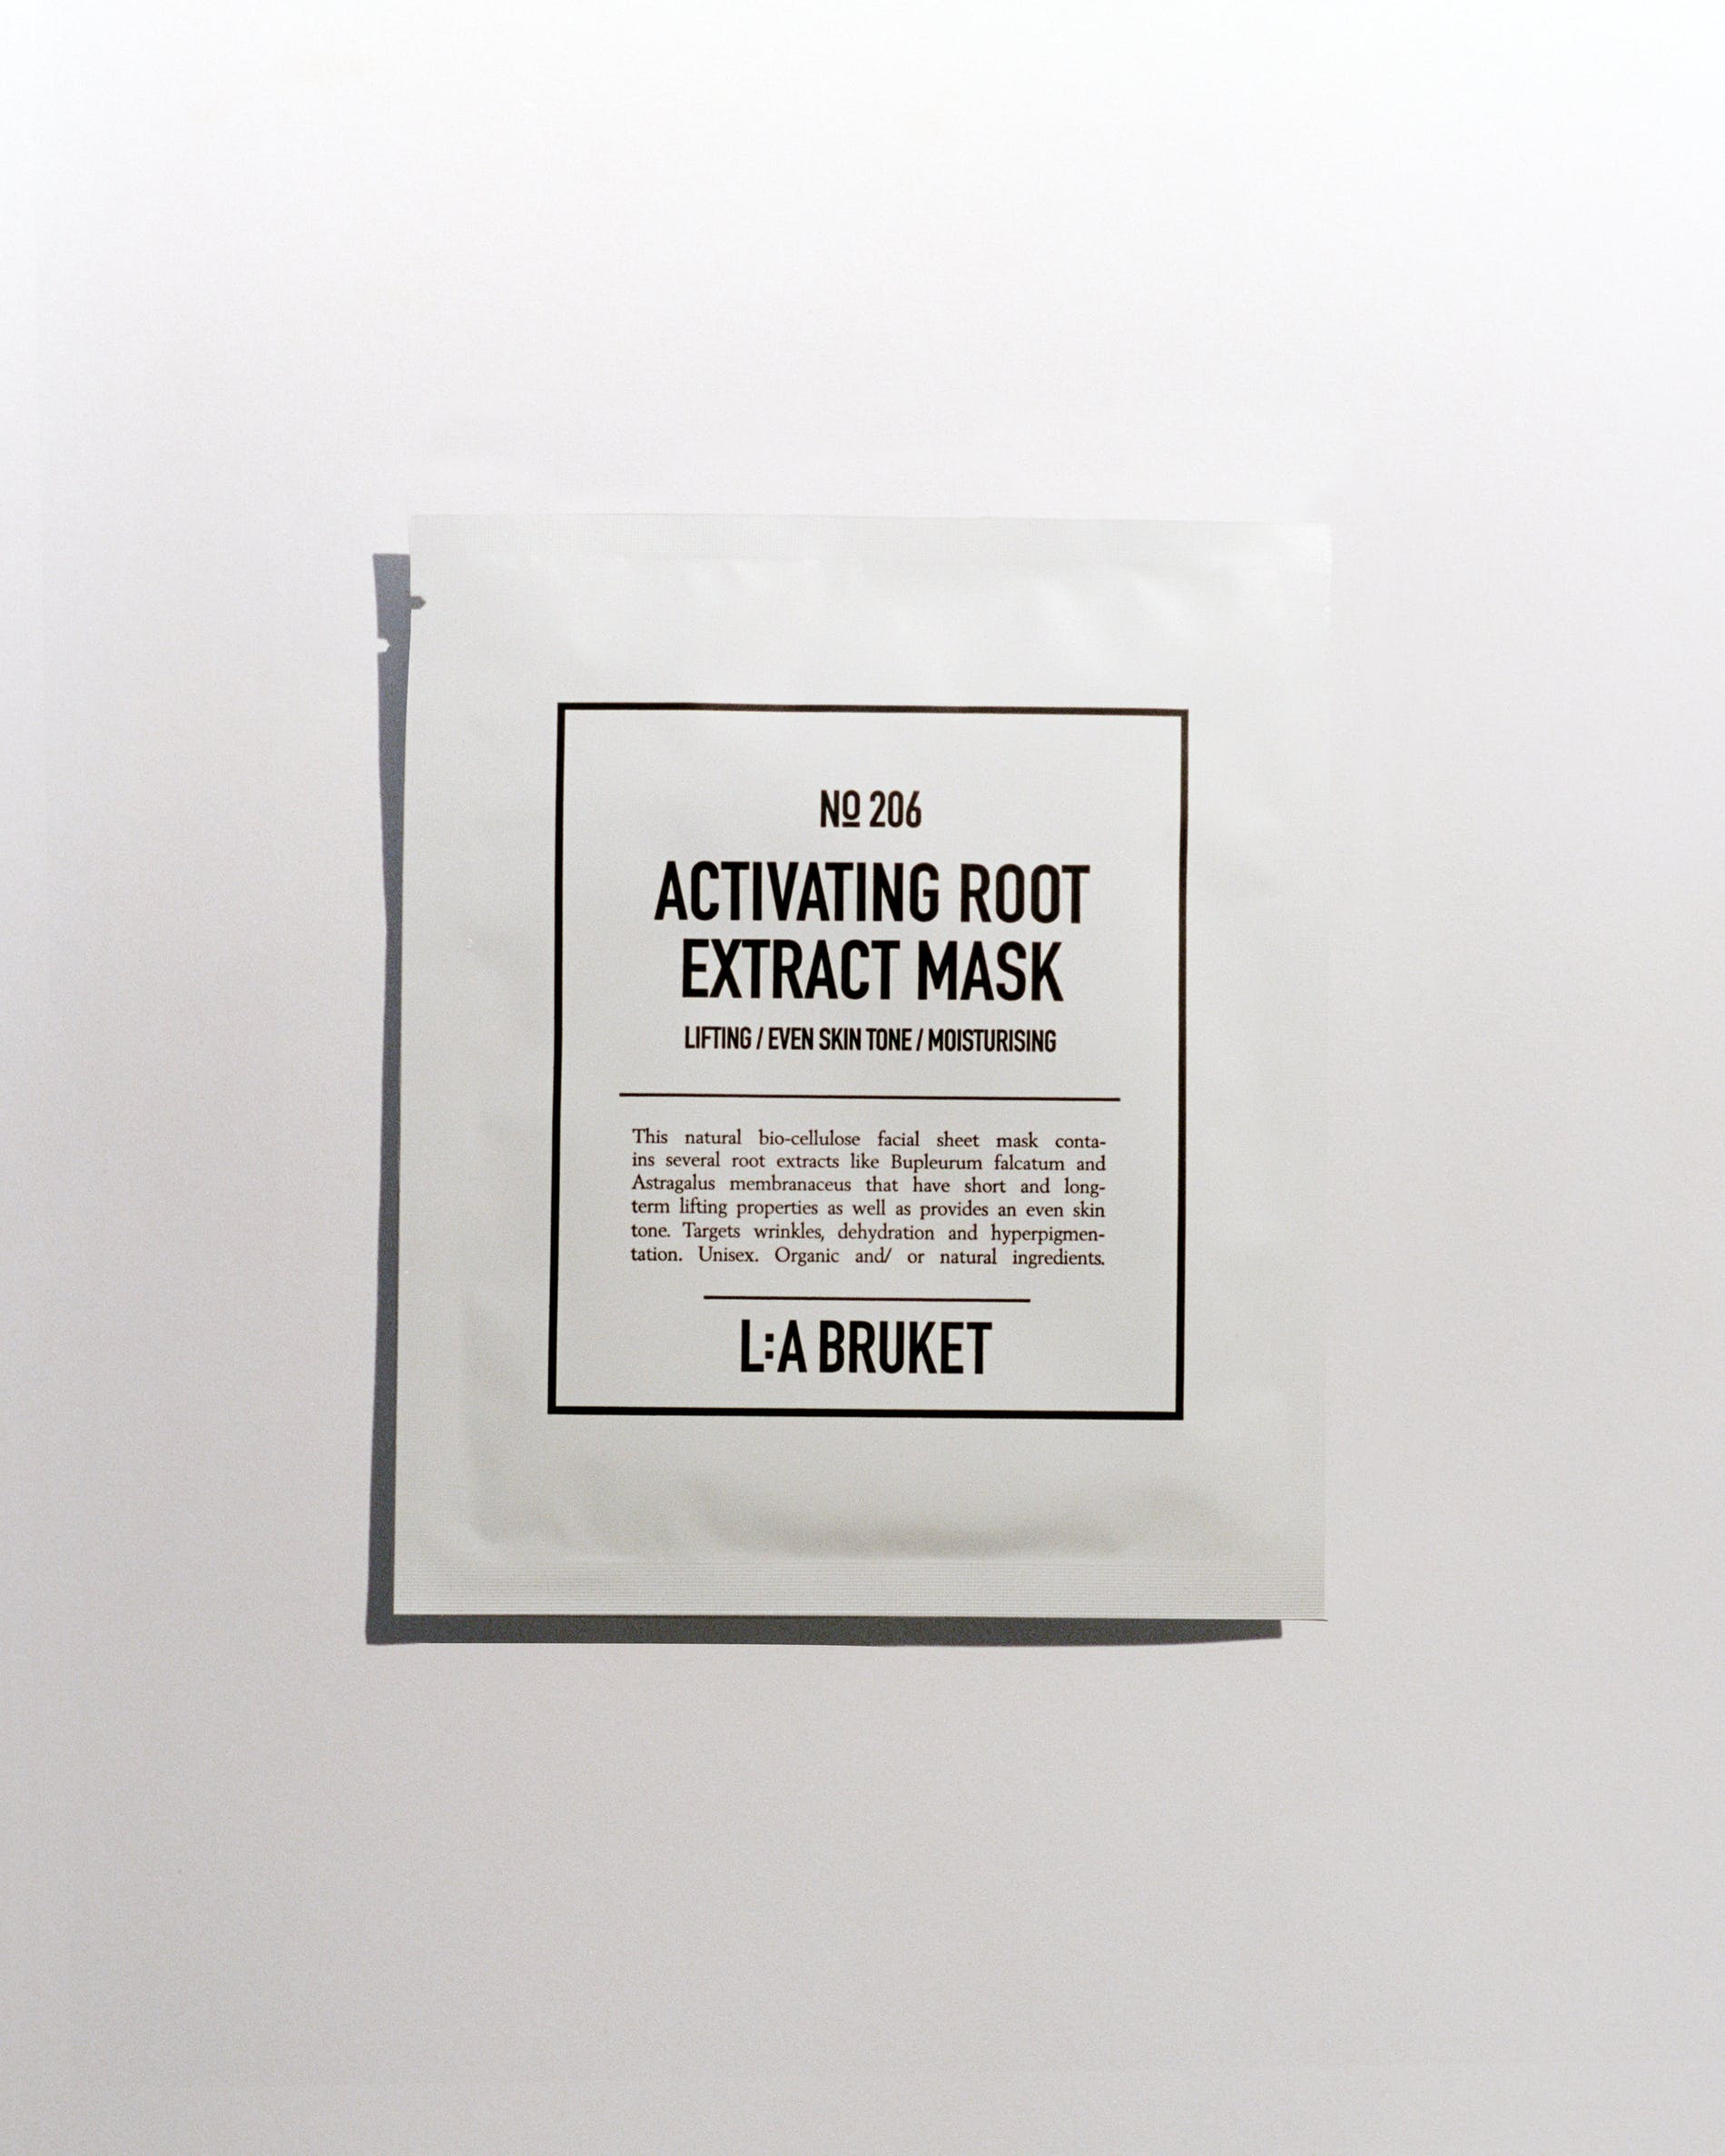 Activating root extract mask